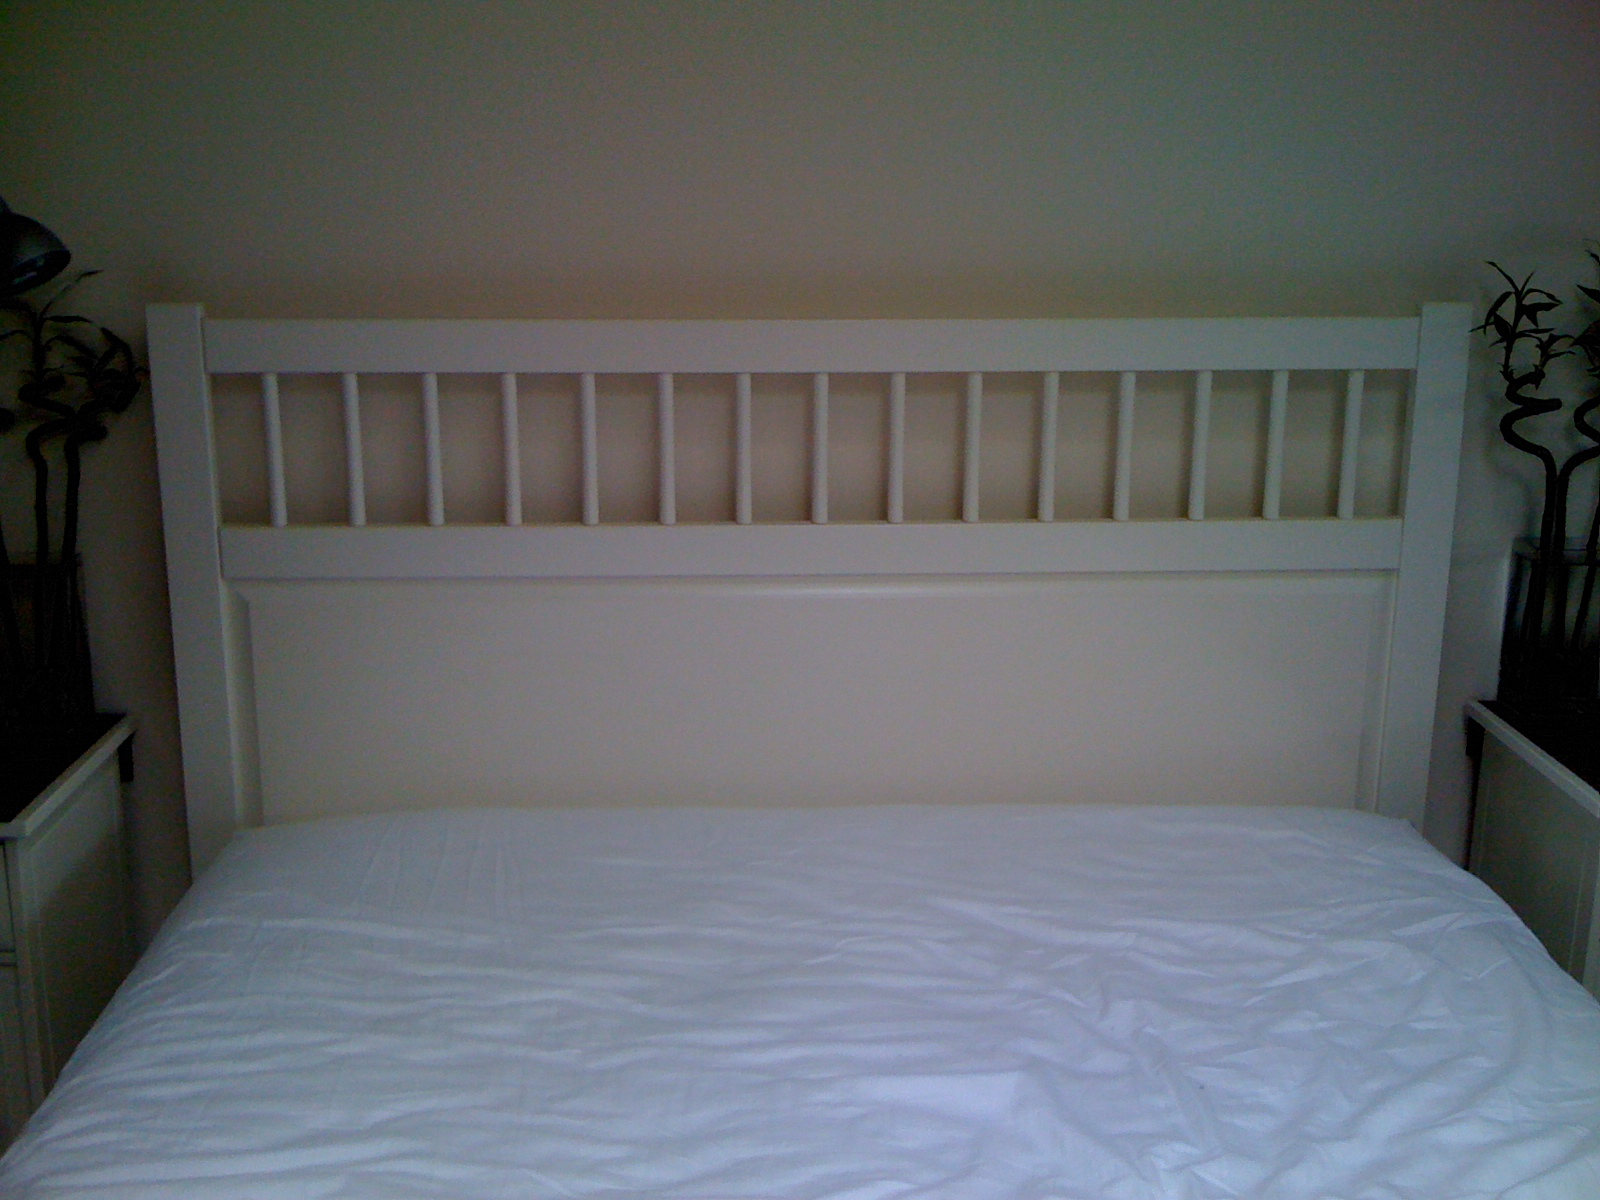 Headboards Ikea | Headboards for Beds Ikea | Double Headboard Ikea